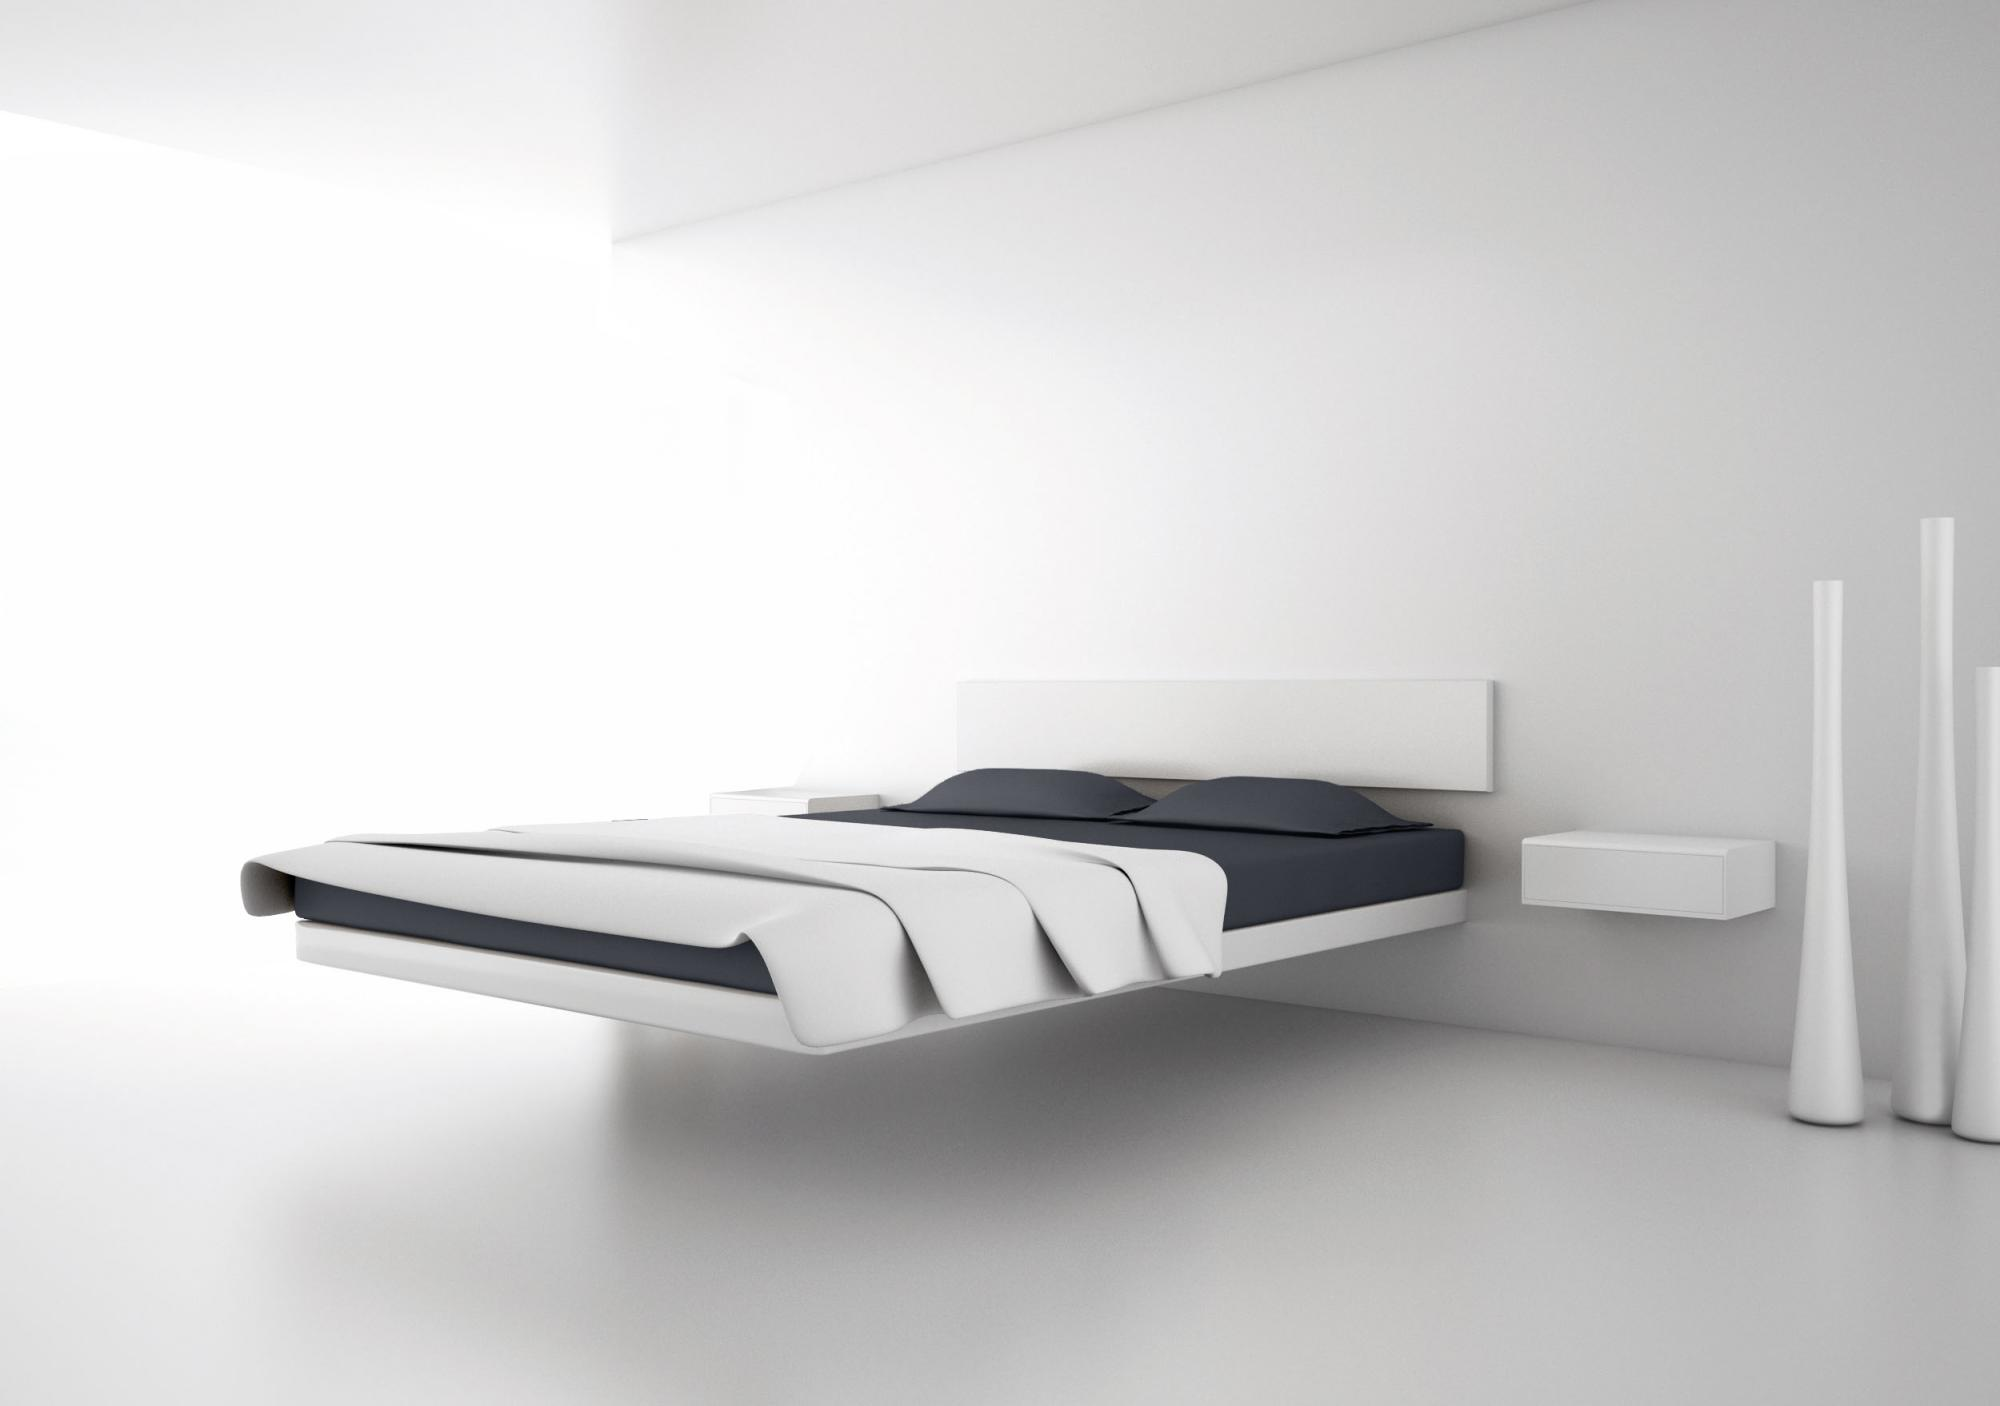 Bedroom Plain Wall Minimalist Concept Alunabedbydolumreserved Levitationbedlitflottantfloatingbed